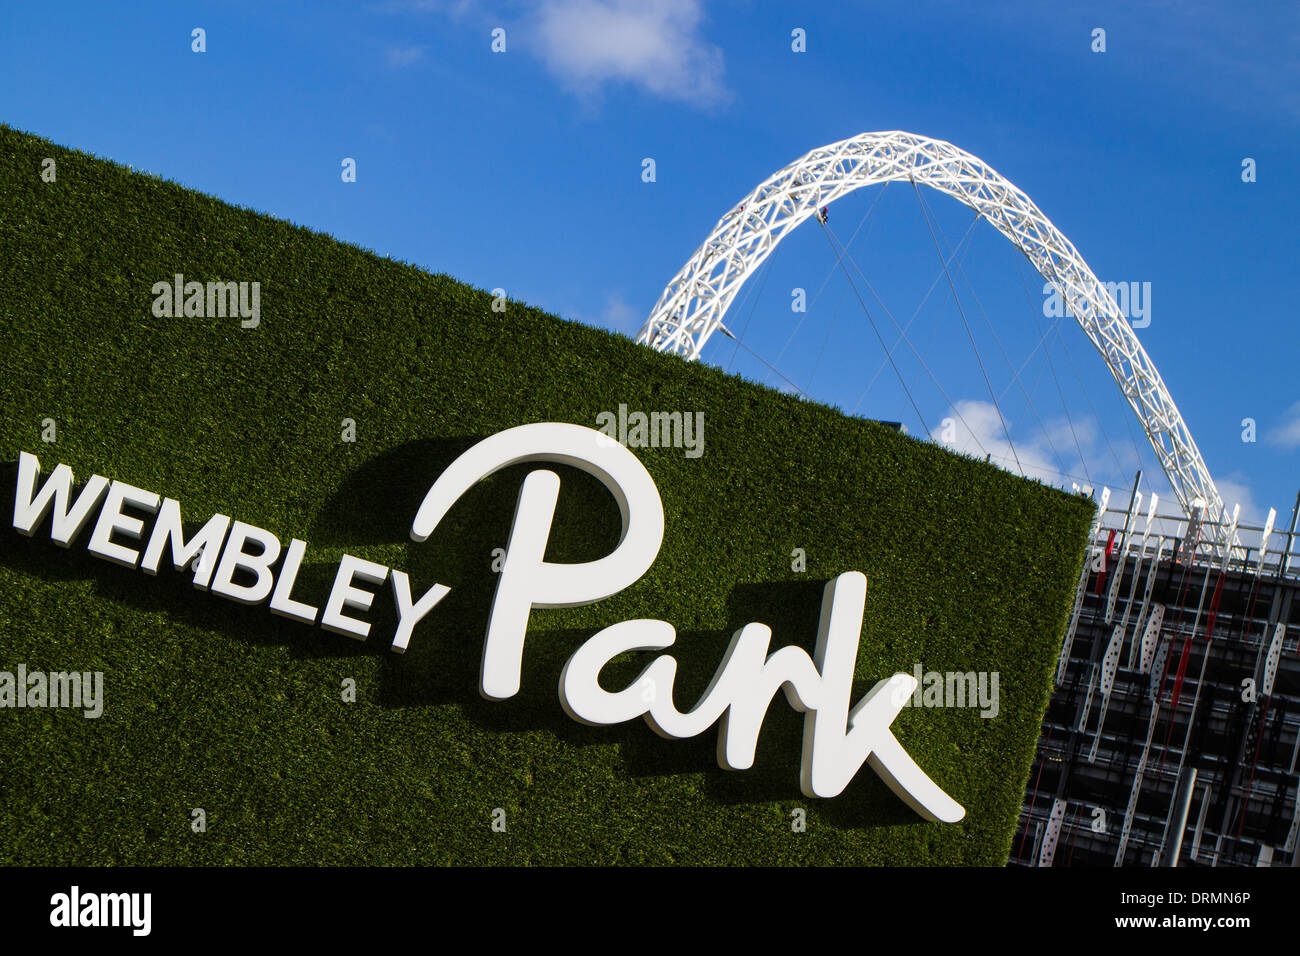 Wembley Park name board in front of Wembley stadium arch - Stock Image